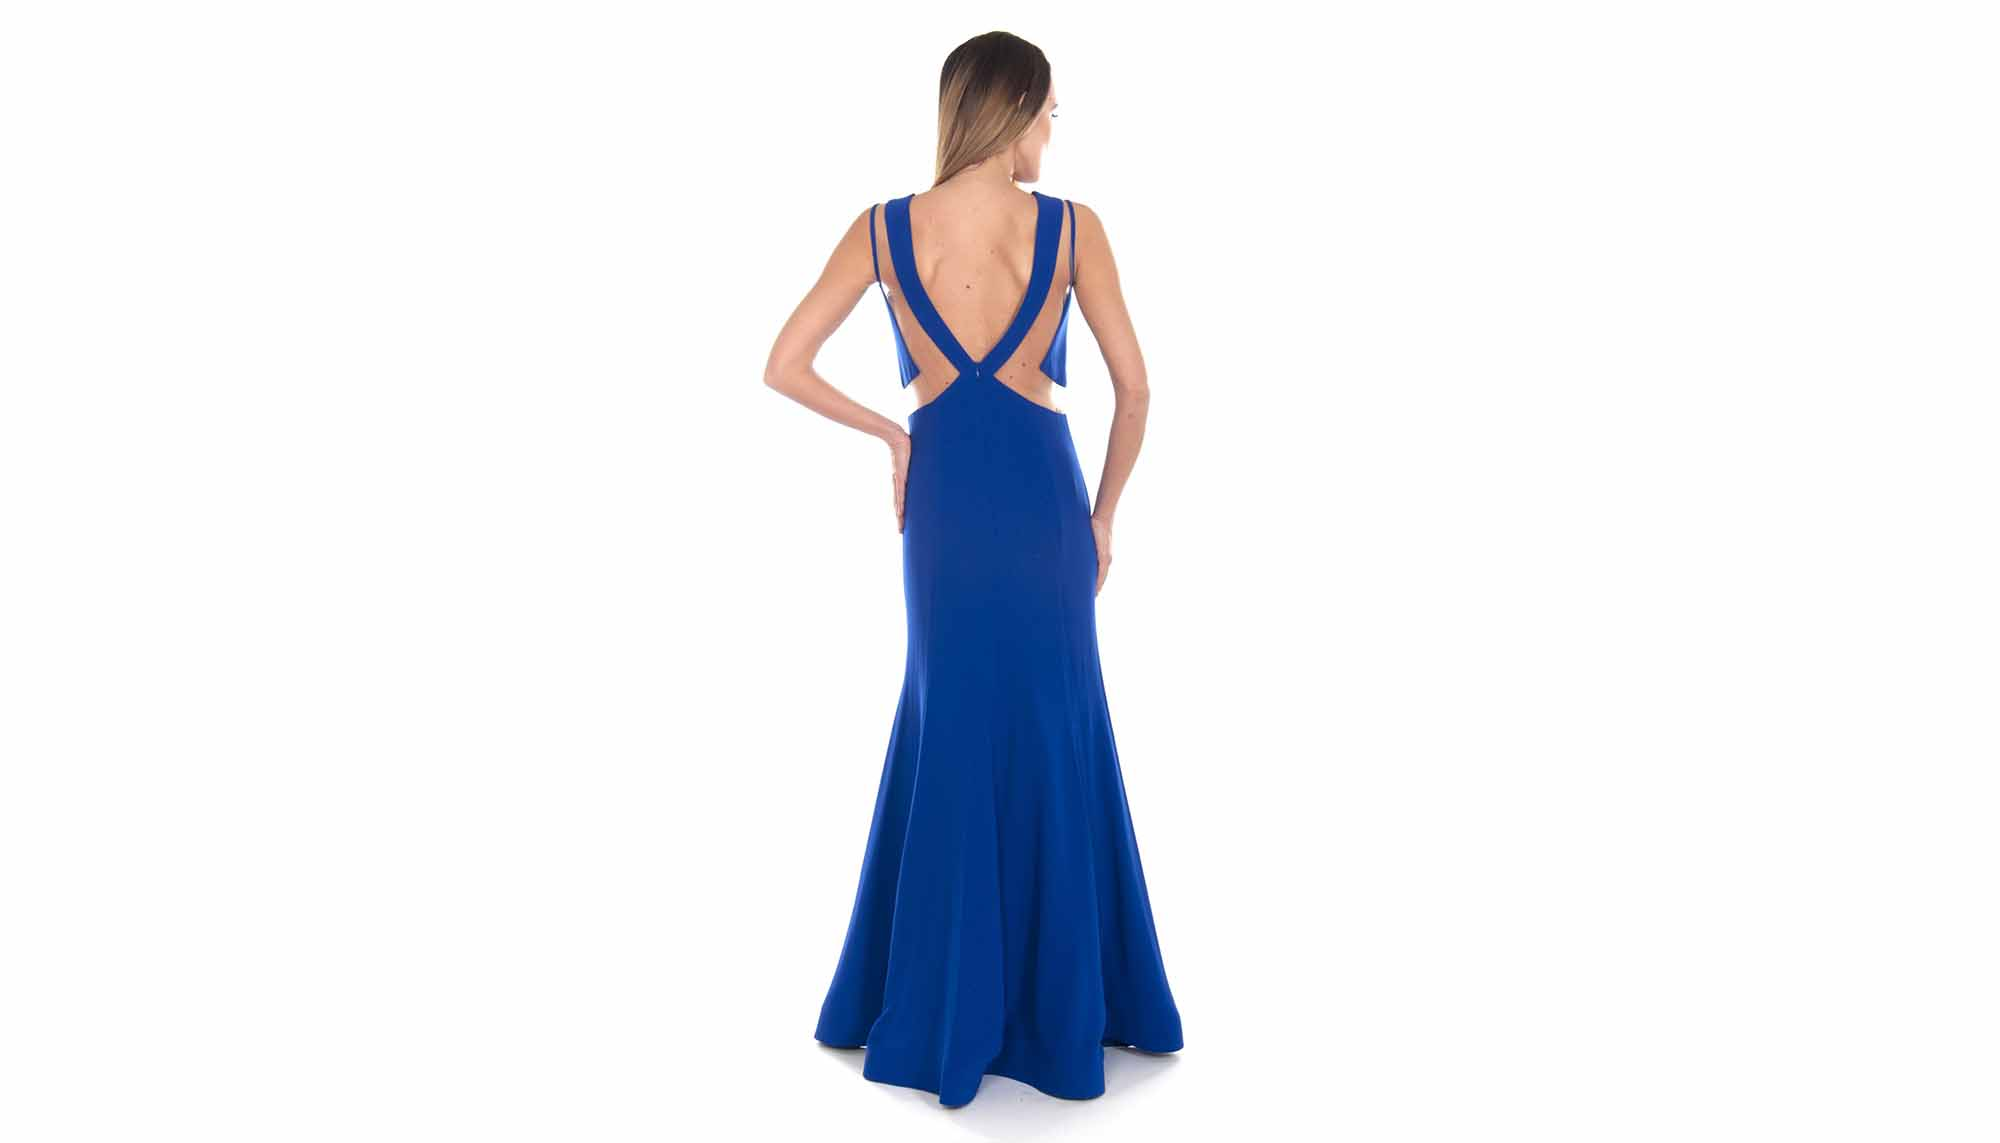 Dressing to the Nines: How to Pick the Best Evening Dress